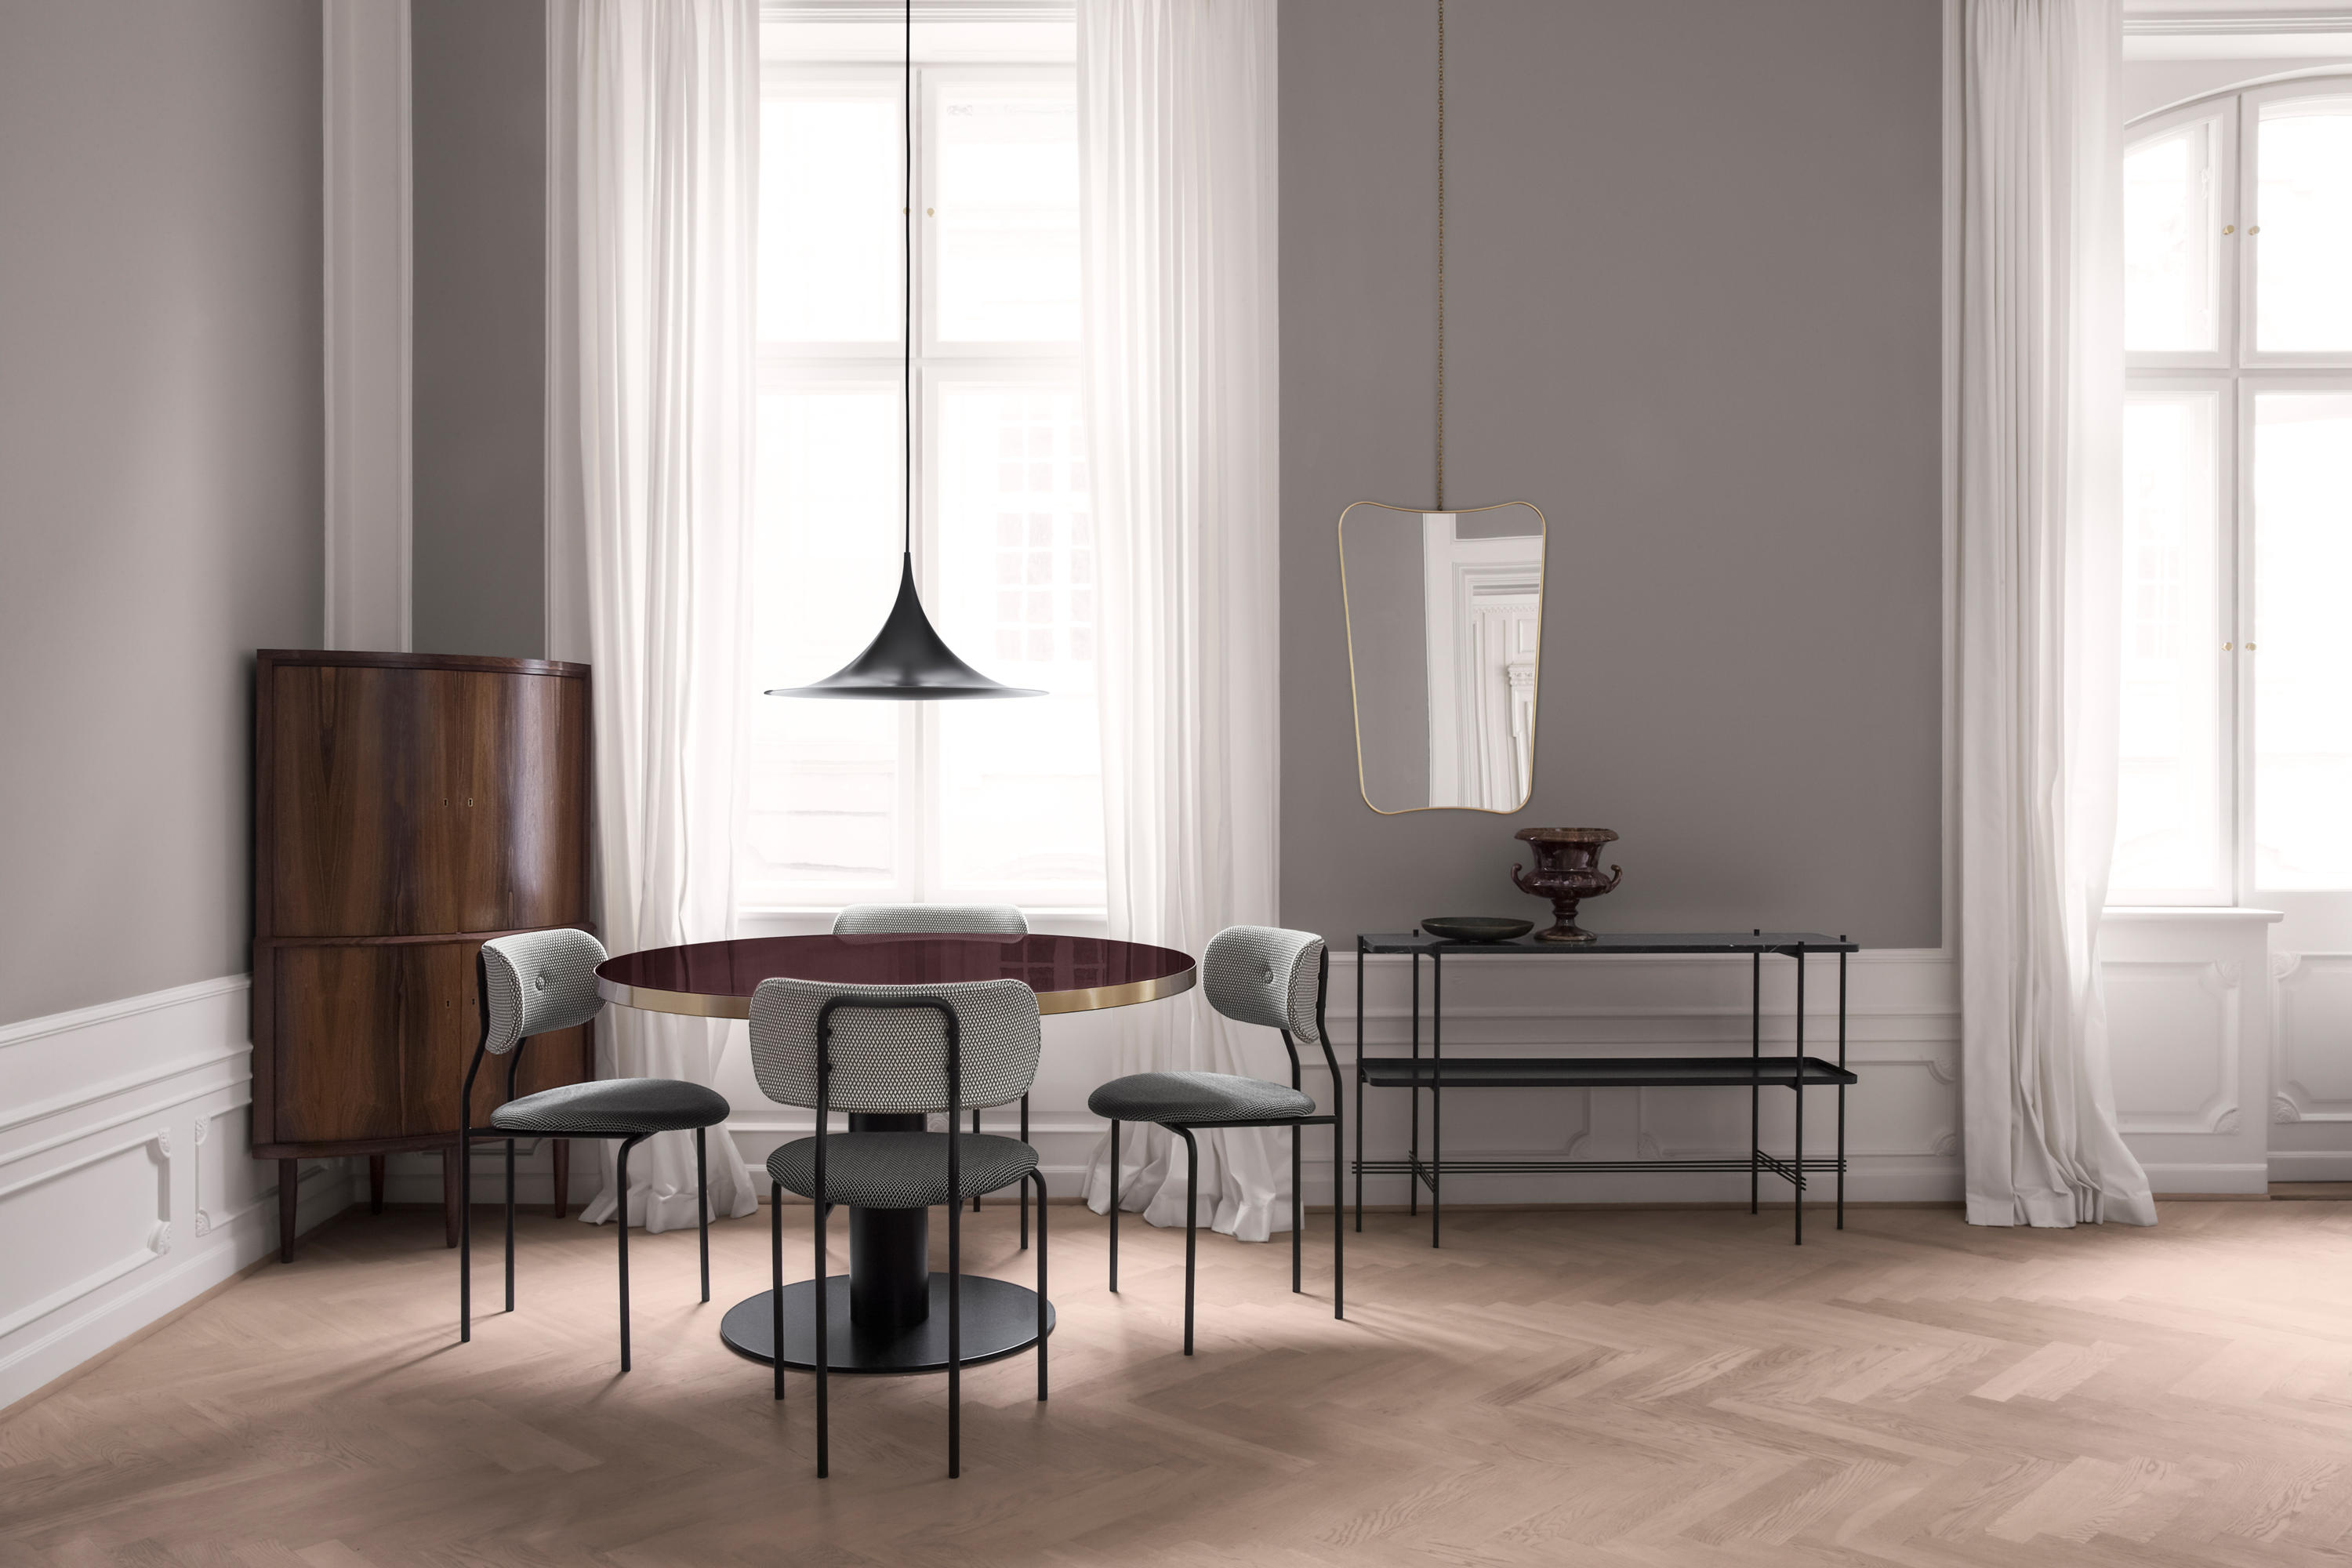 COCO CHAIR - Visitors chairs / Side chairs from GUBI